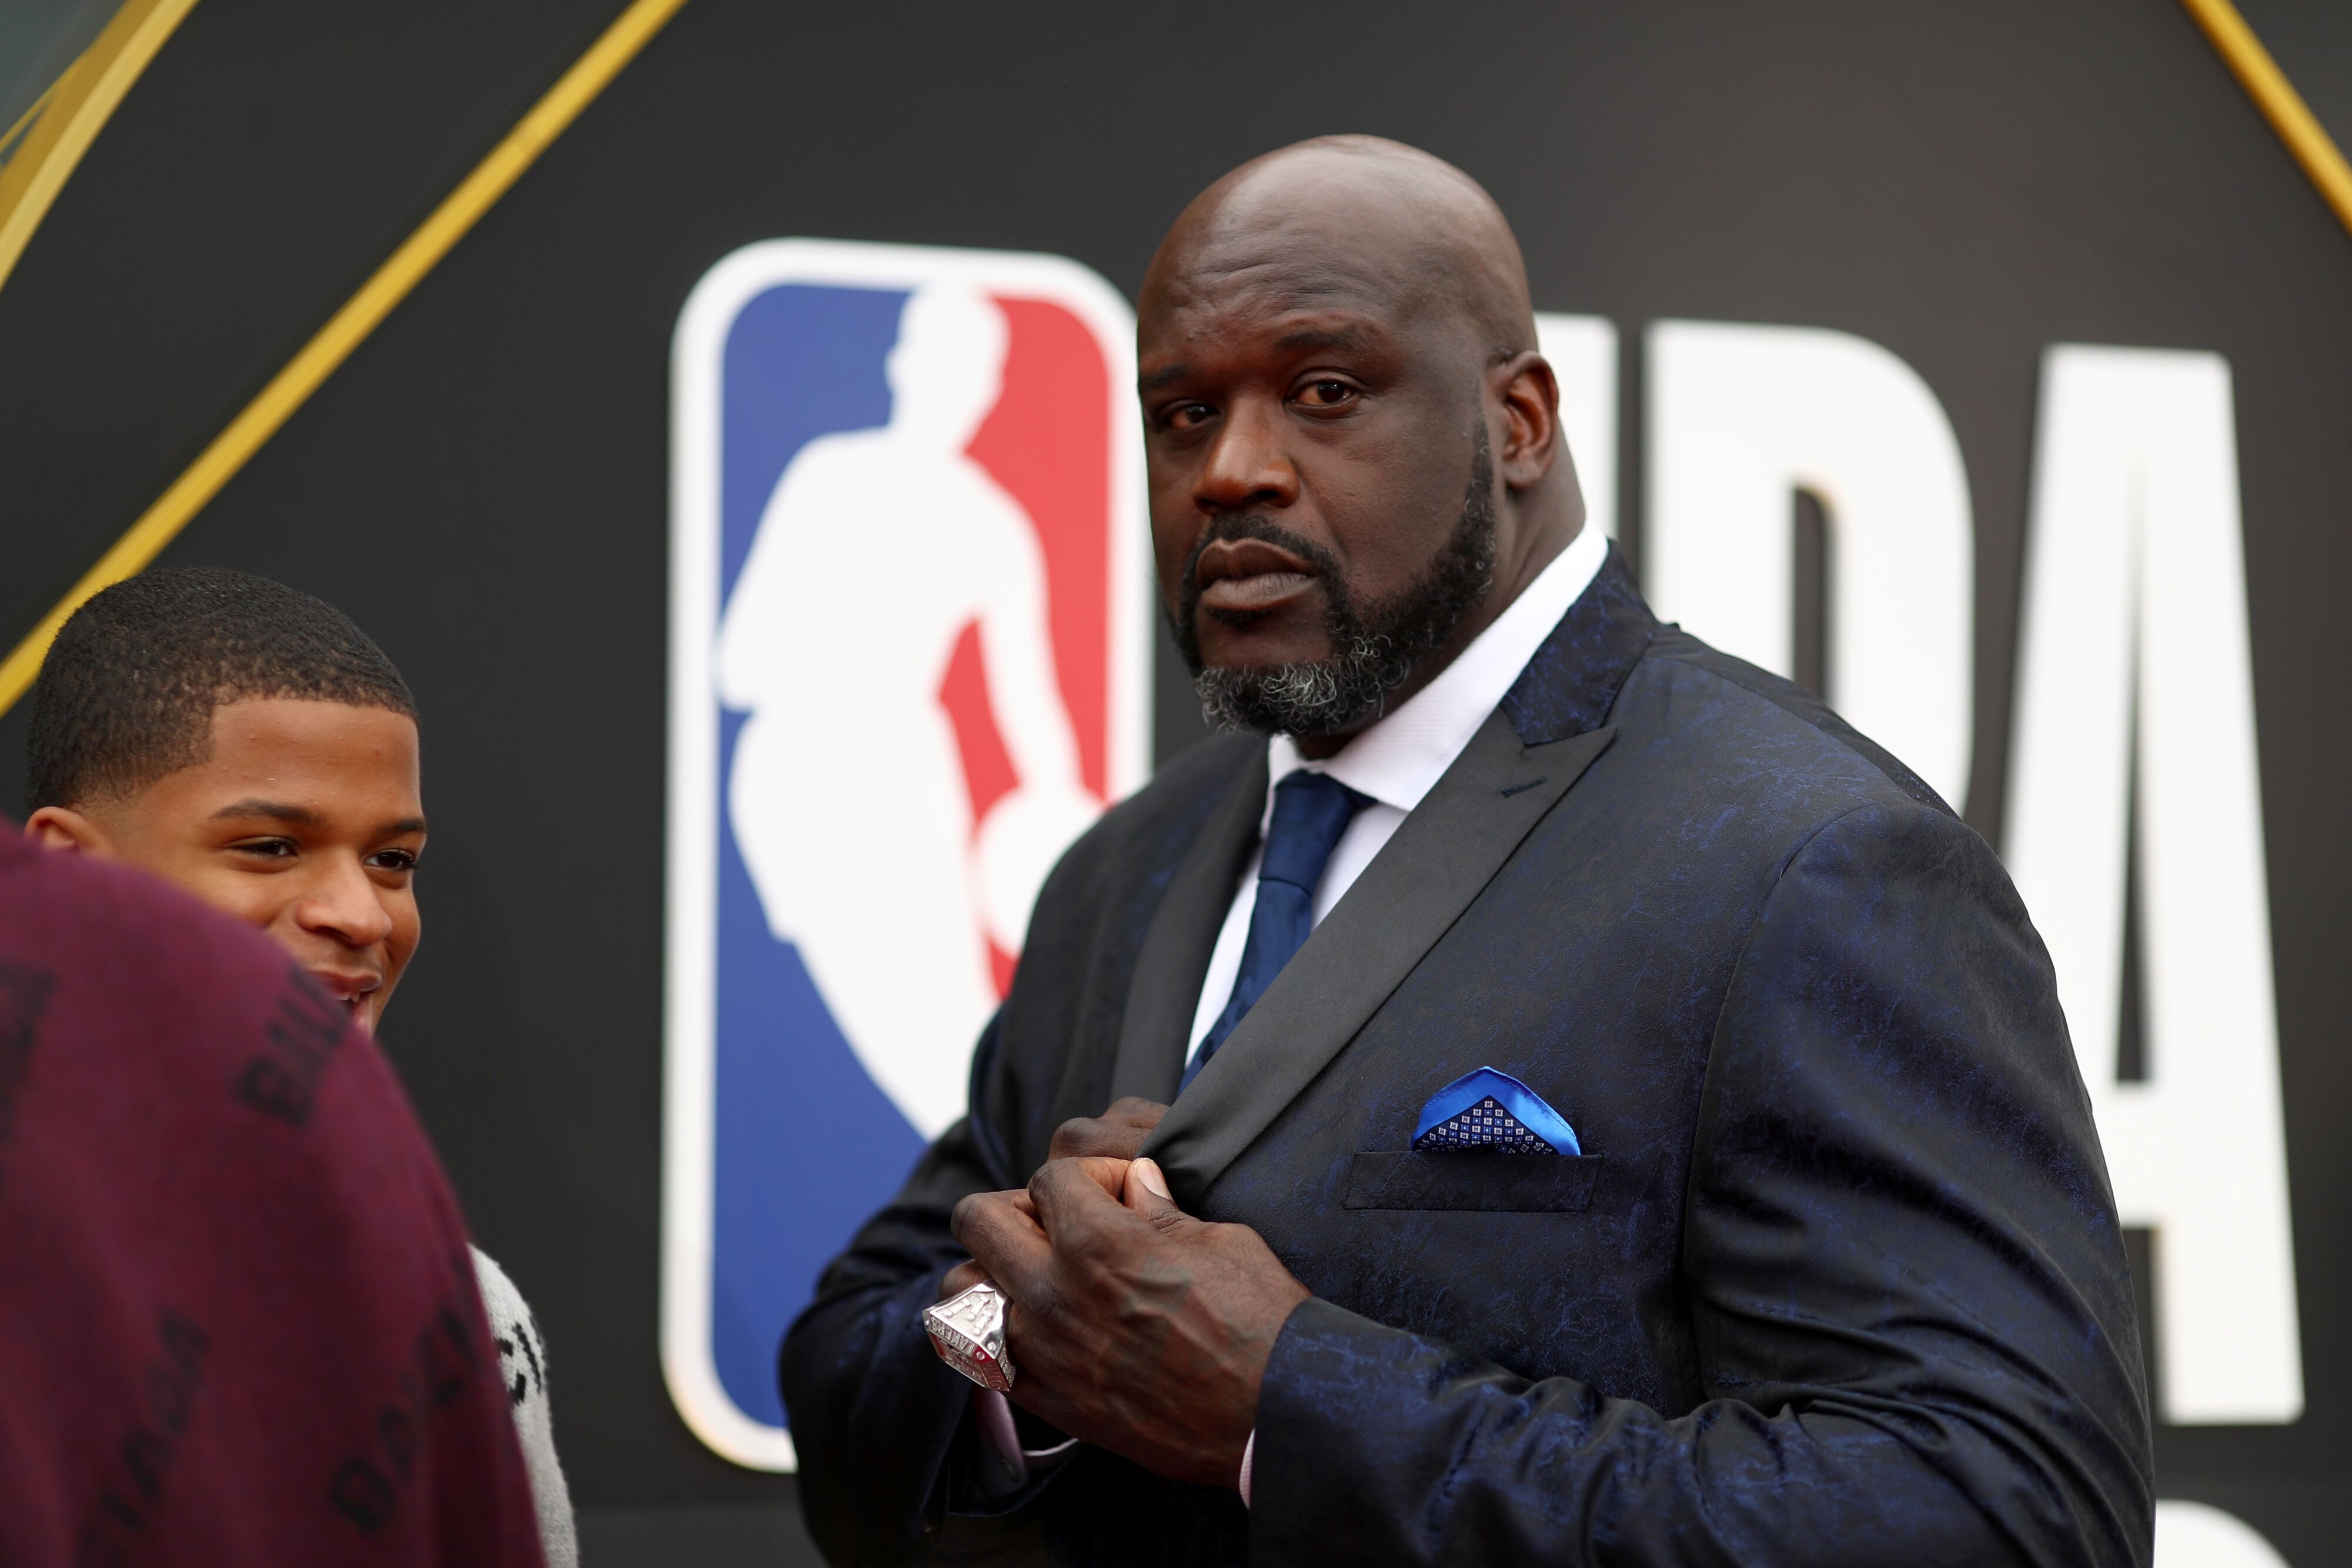 Shaquille O'Neal attends the 2019 NBA Awards presented by Kia on TNT. | Source: Getty Images